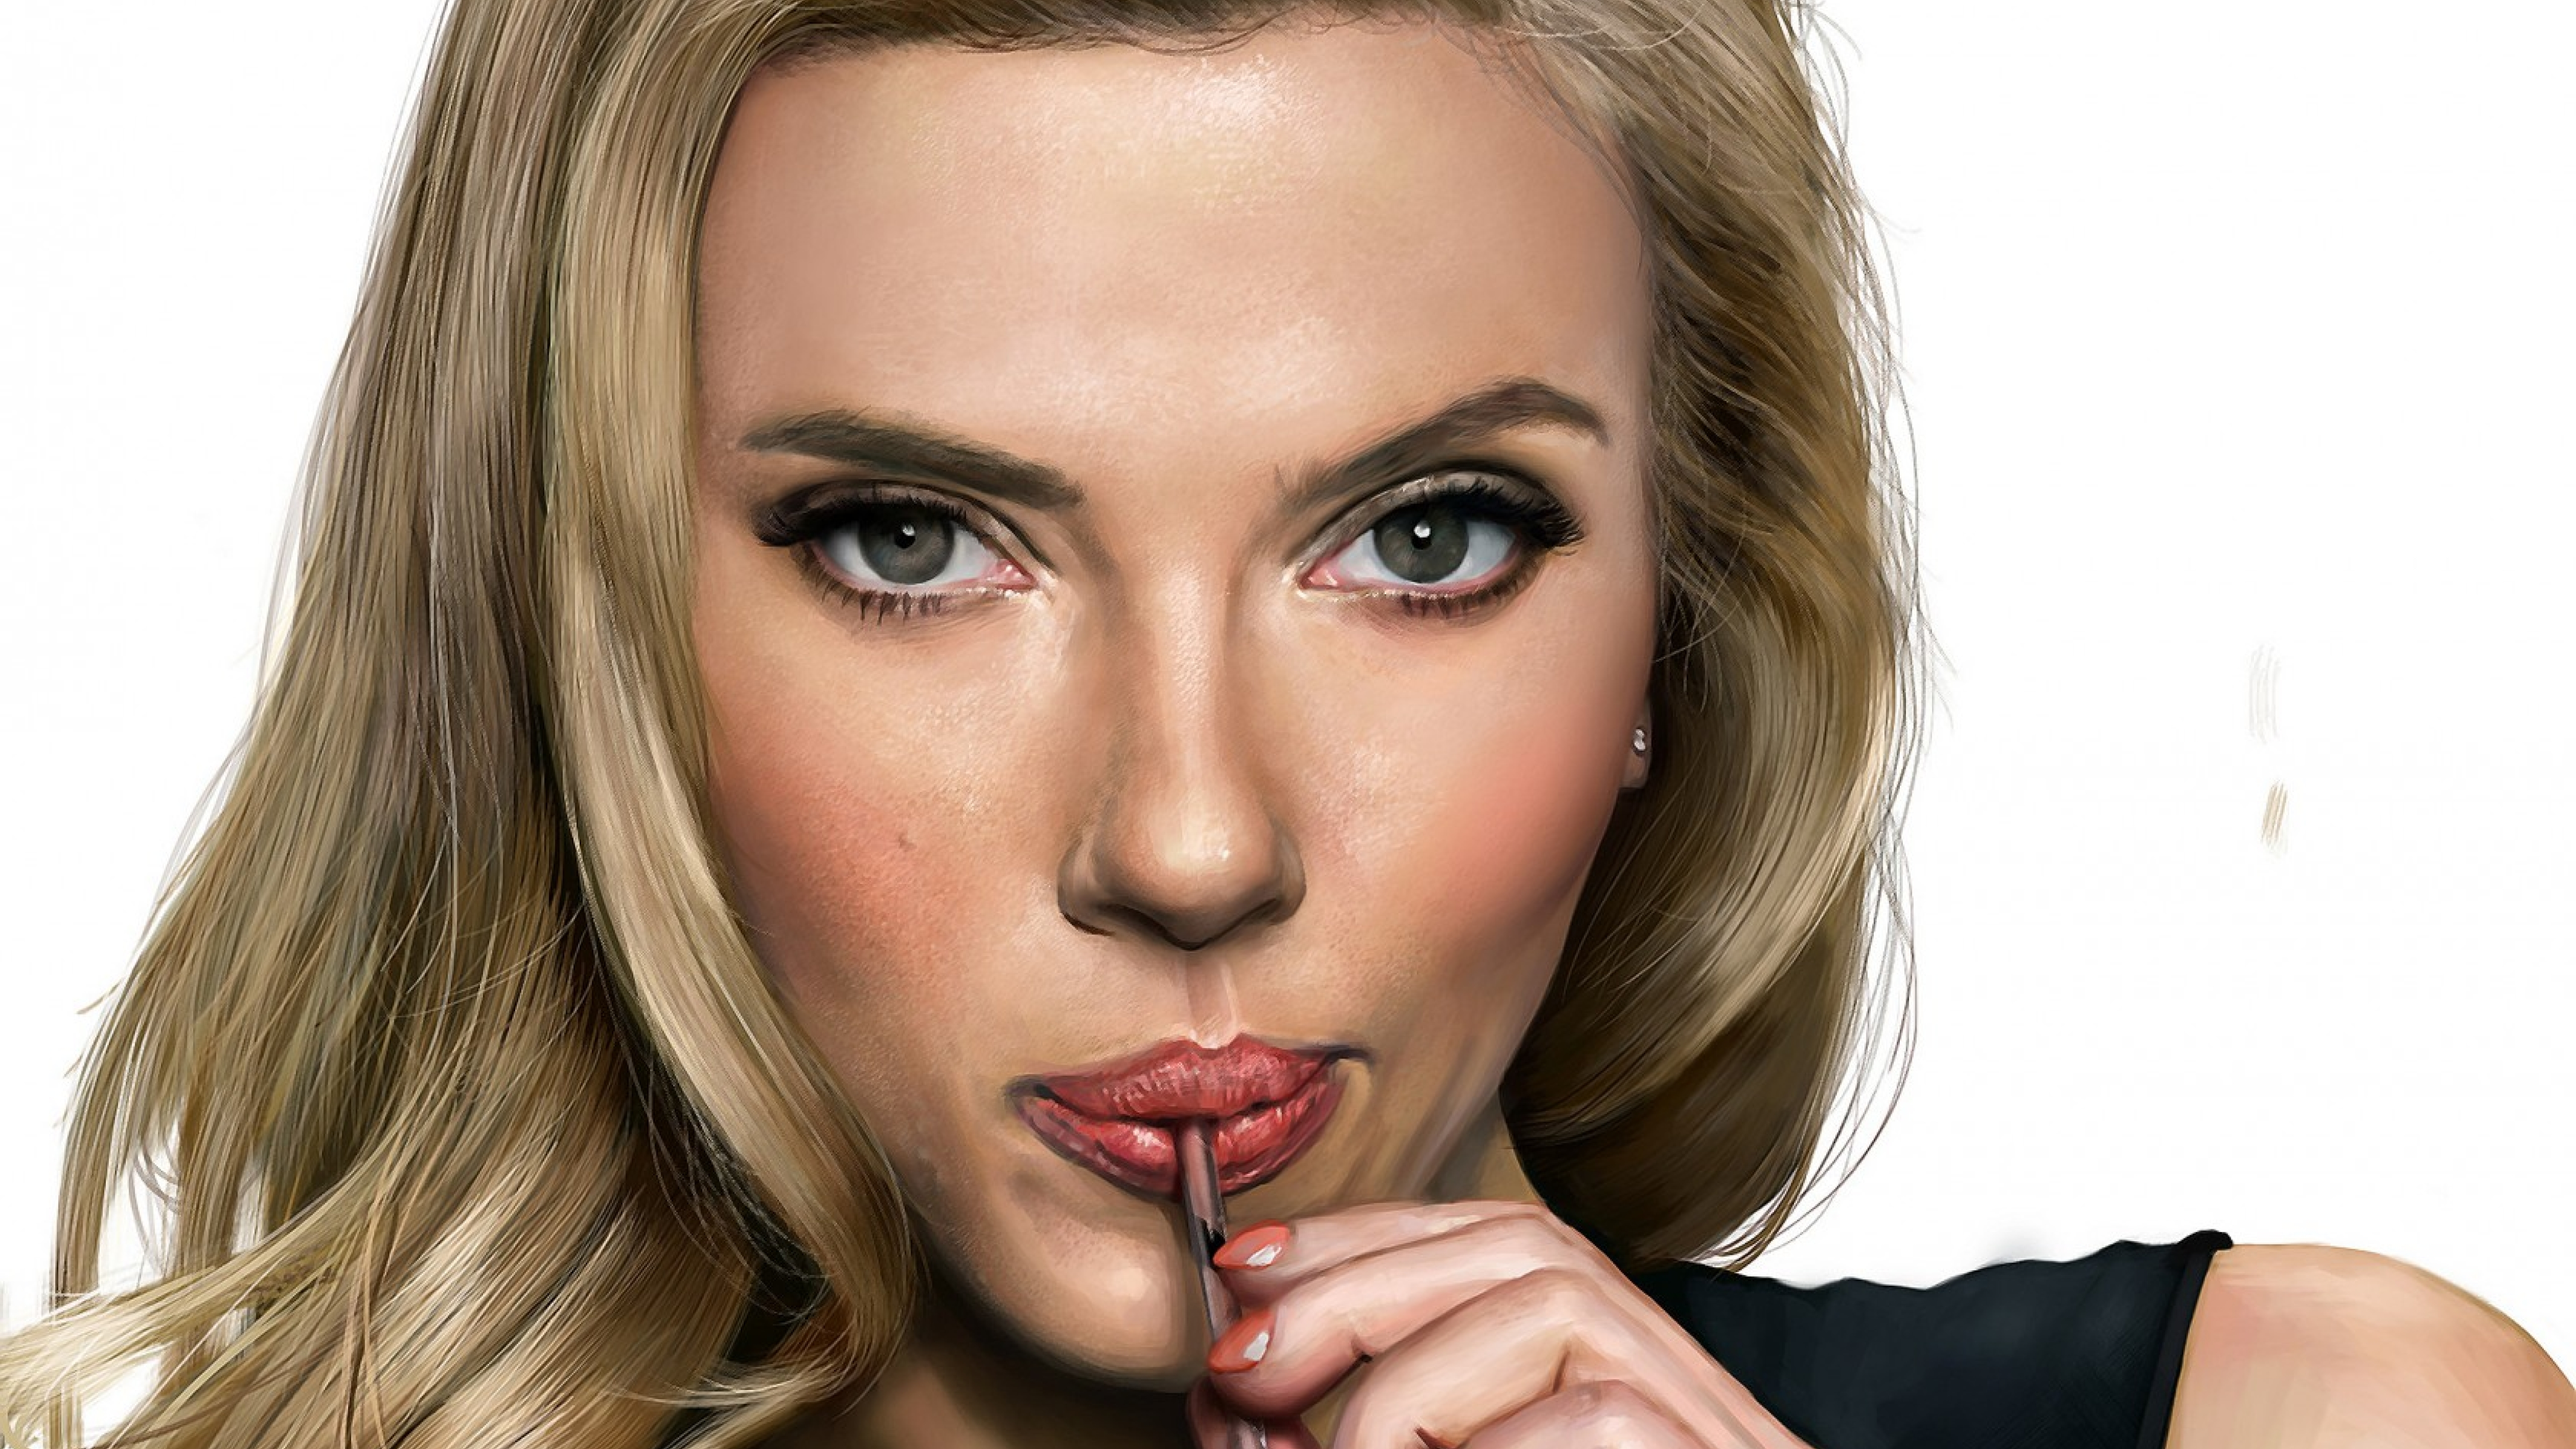 5120x2880 Scarlett Johansson Face Art 5k Wallpaper Hd Movies 4k Wallpapers Images Photos And Background